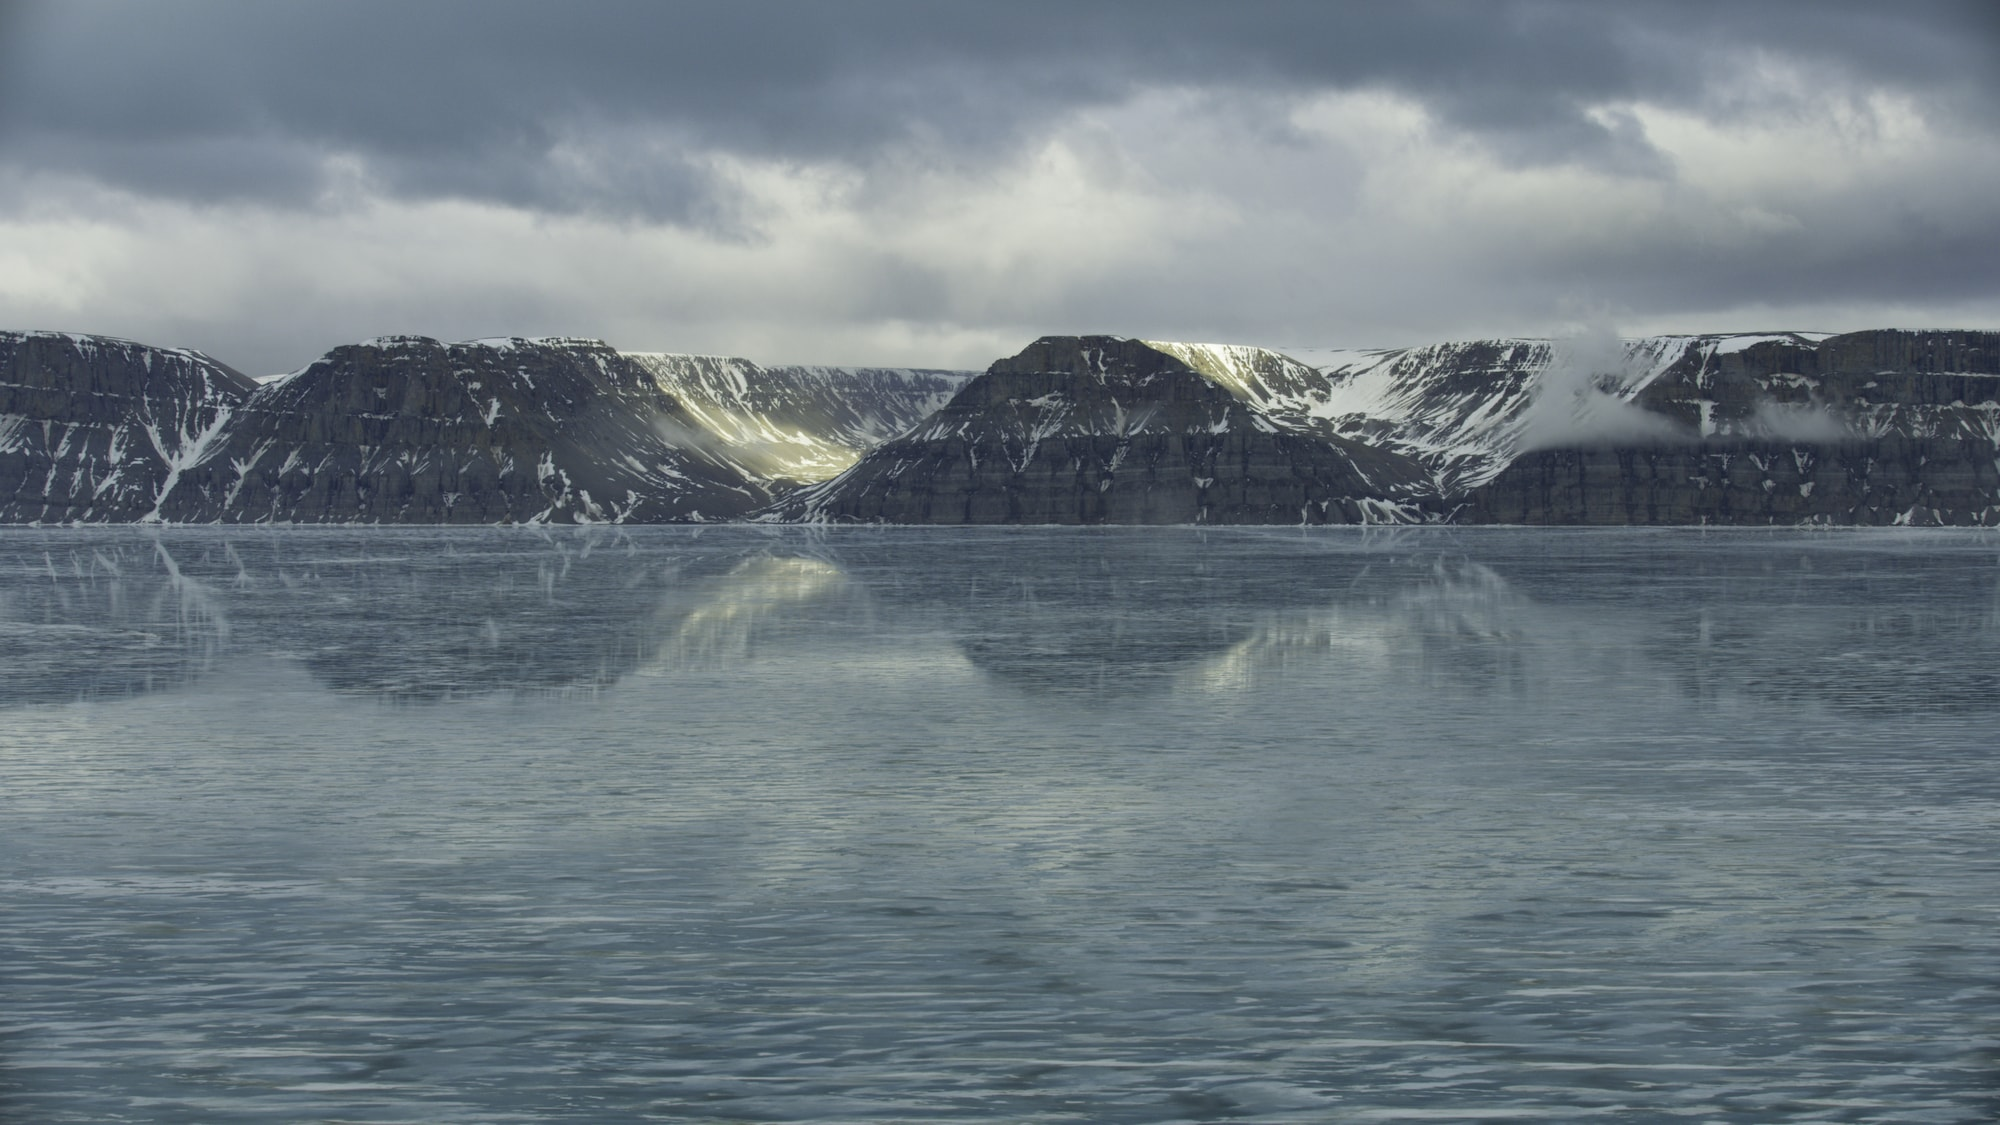 The inlets along the islands of the Canadian Arctic are important summering grounds for belugas and narwhals. Some travel almost a thousand miles from the west coast of Greenland to reach here. (National Geographic for Disney+/Thomas Miller)